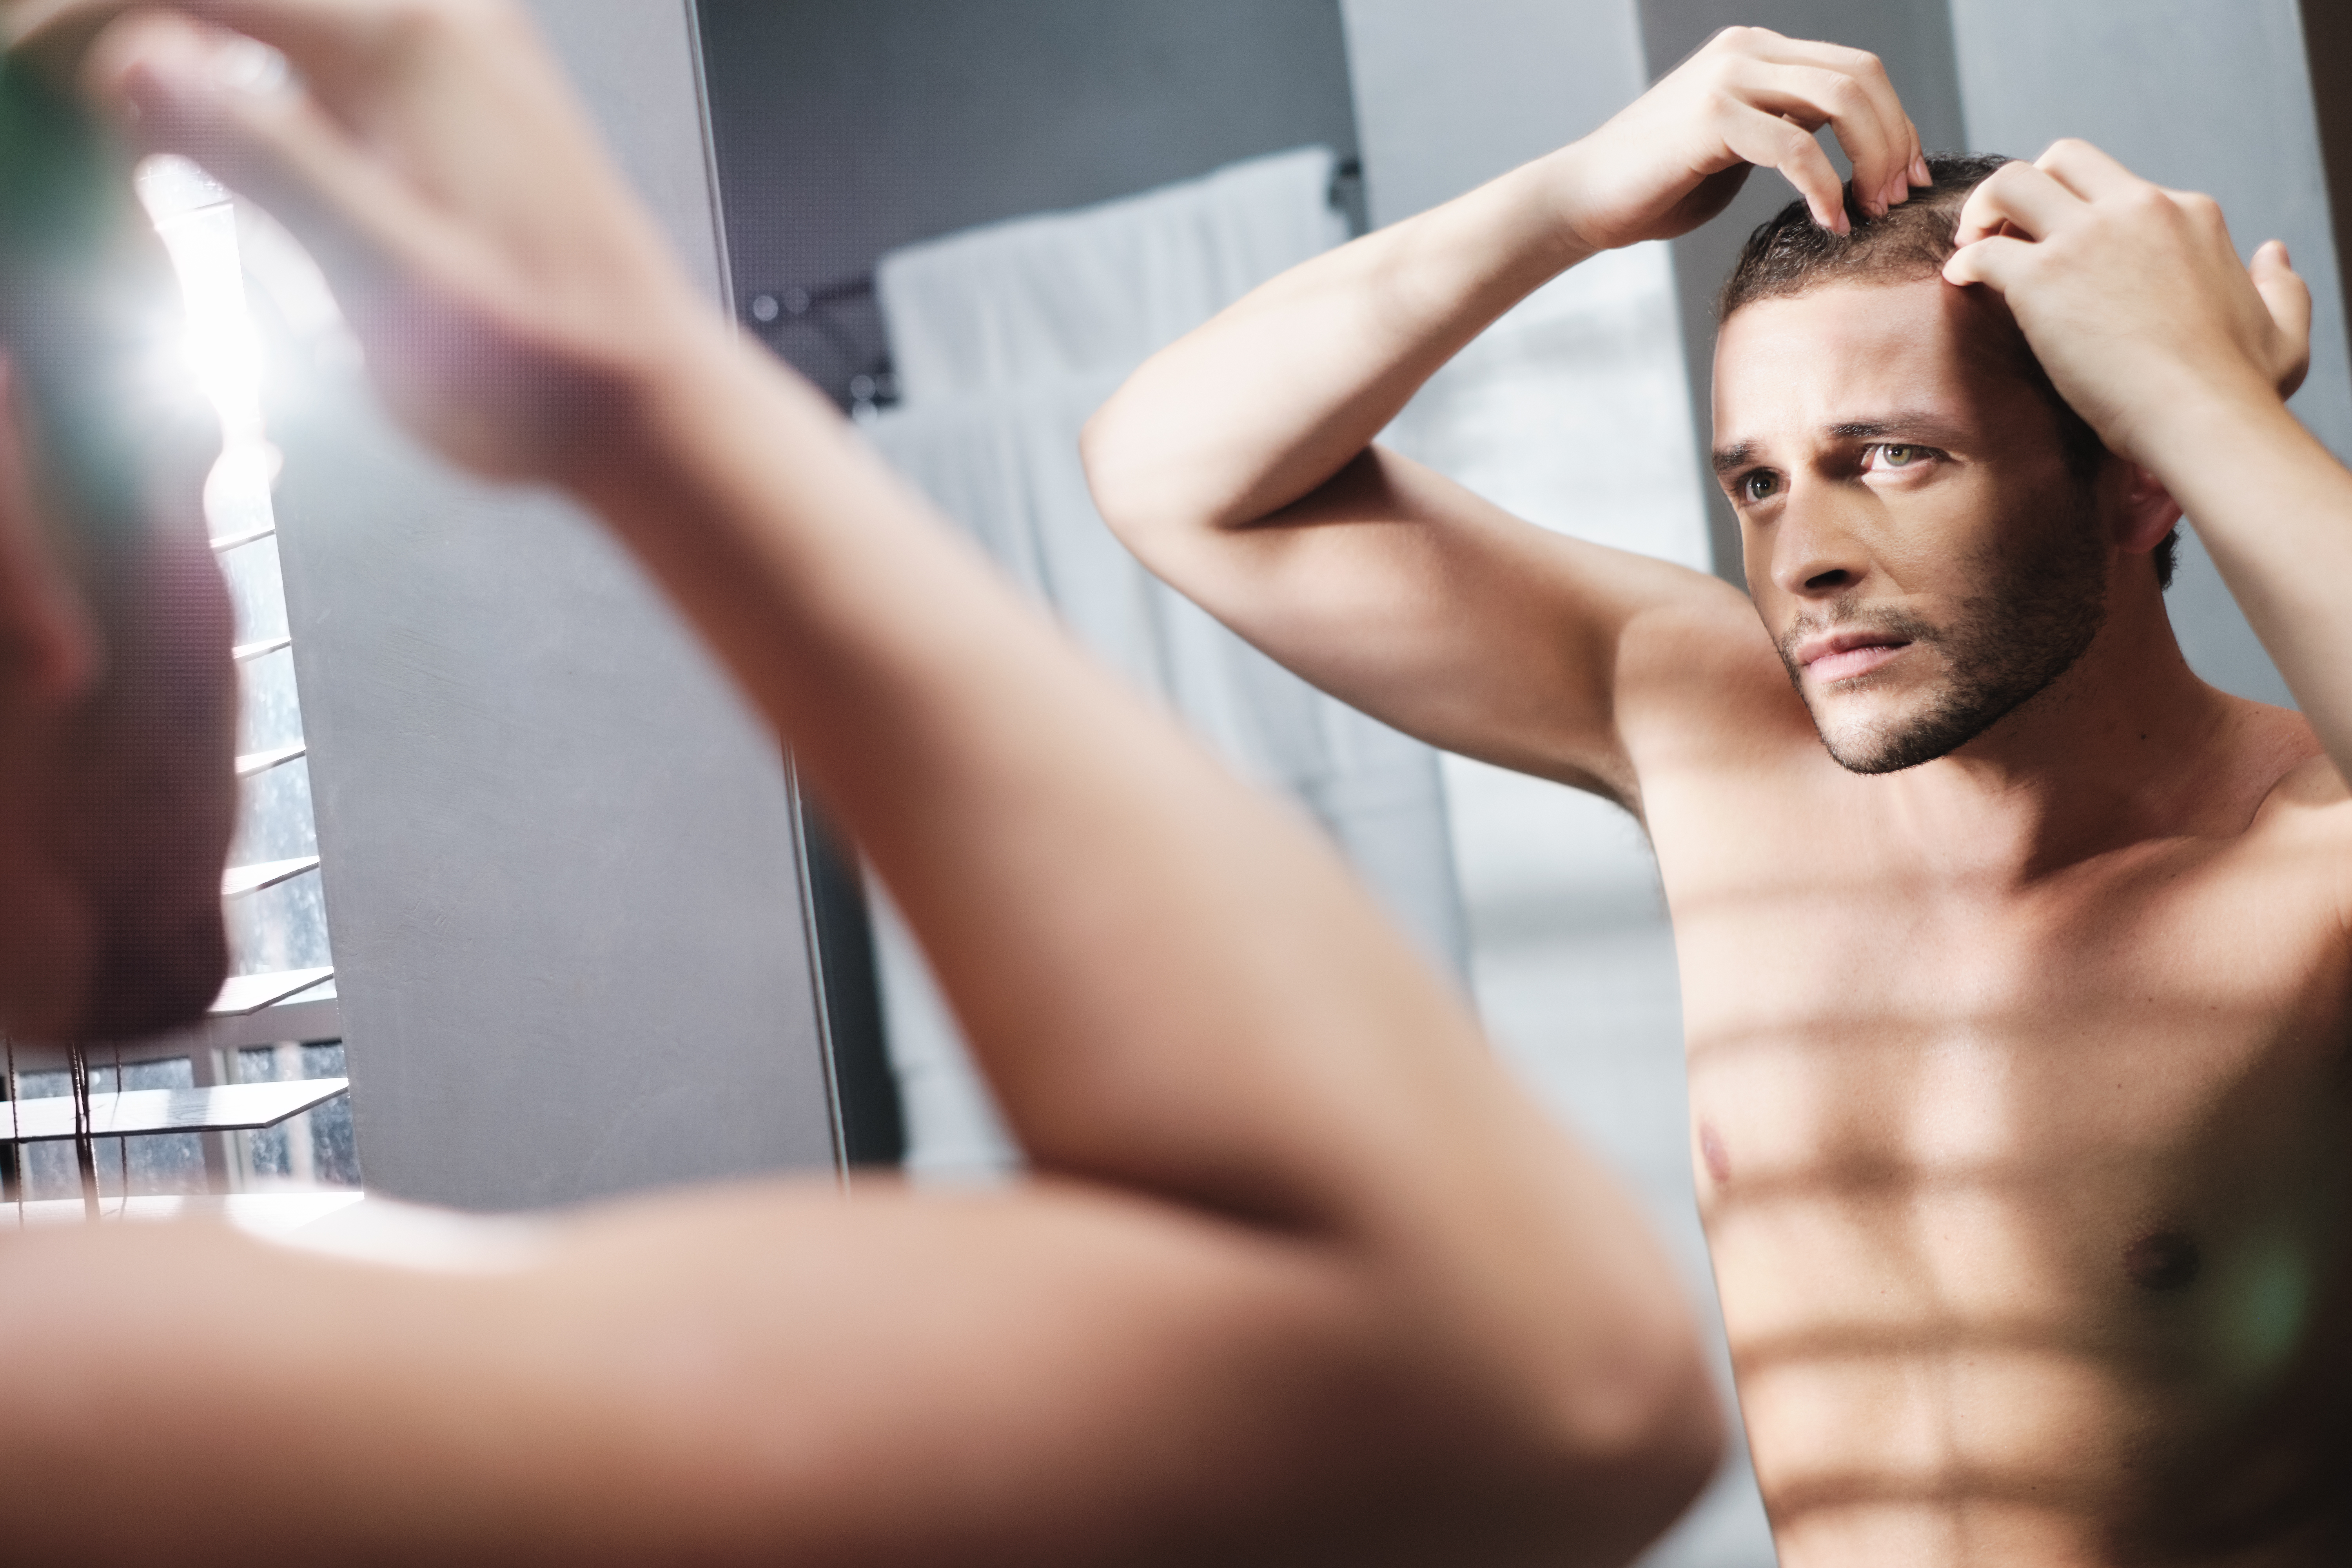 A Concerned man looking in the mirror